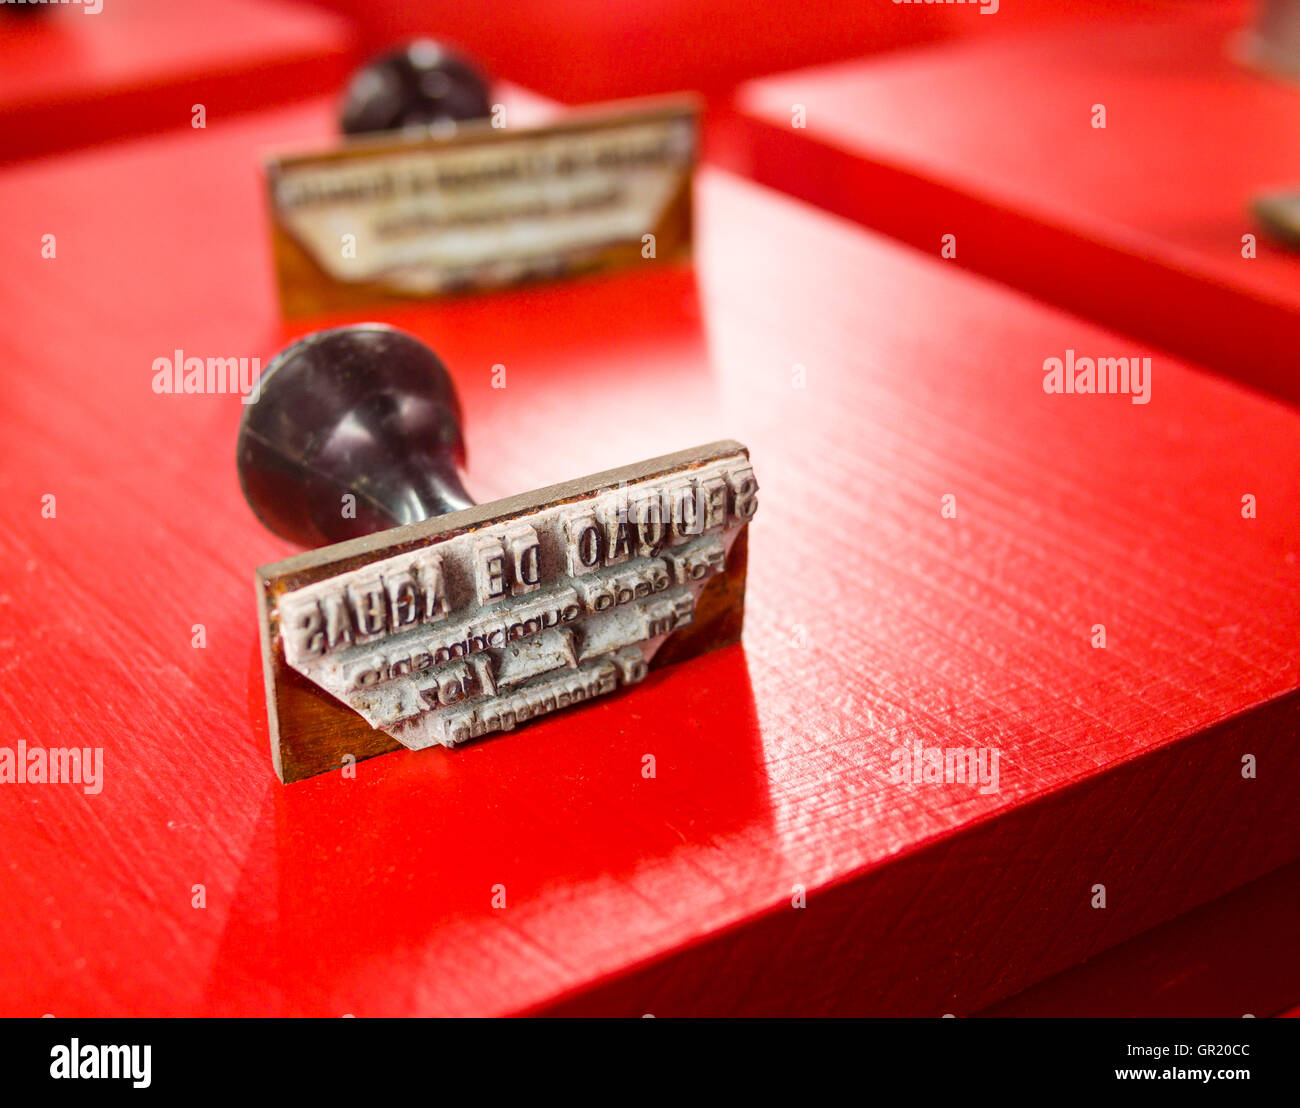 Rubber Stamps on Red. A pair of rubber stamps displayed on a bright red board. Seggao de Aghas. Thinking Section. - Stock Image